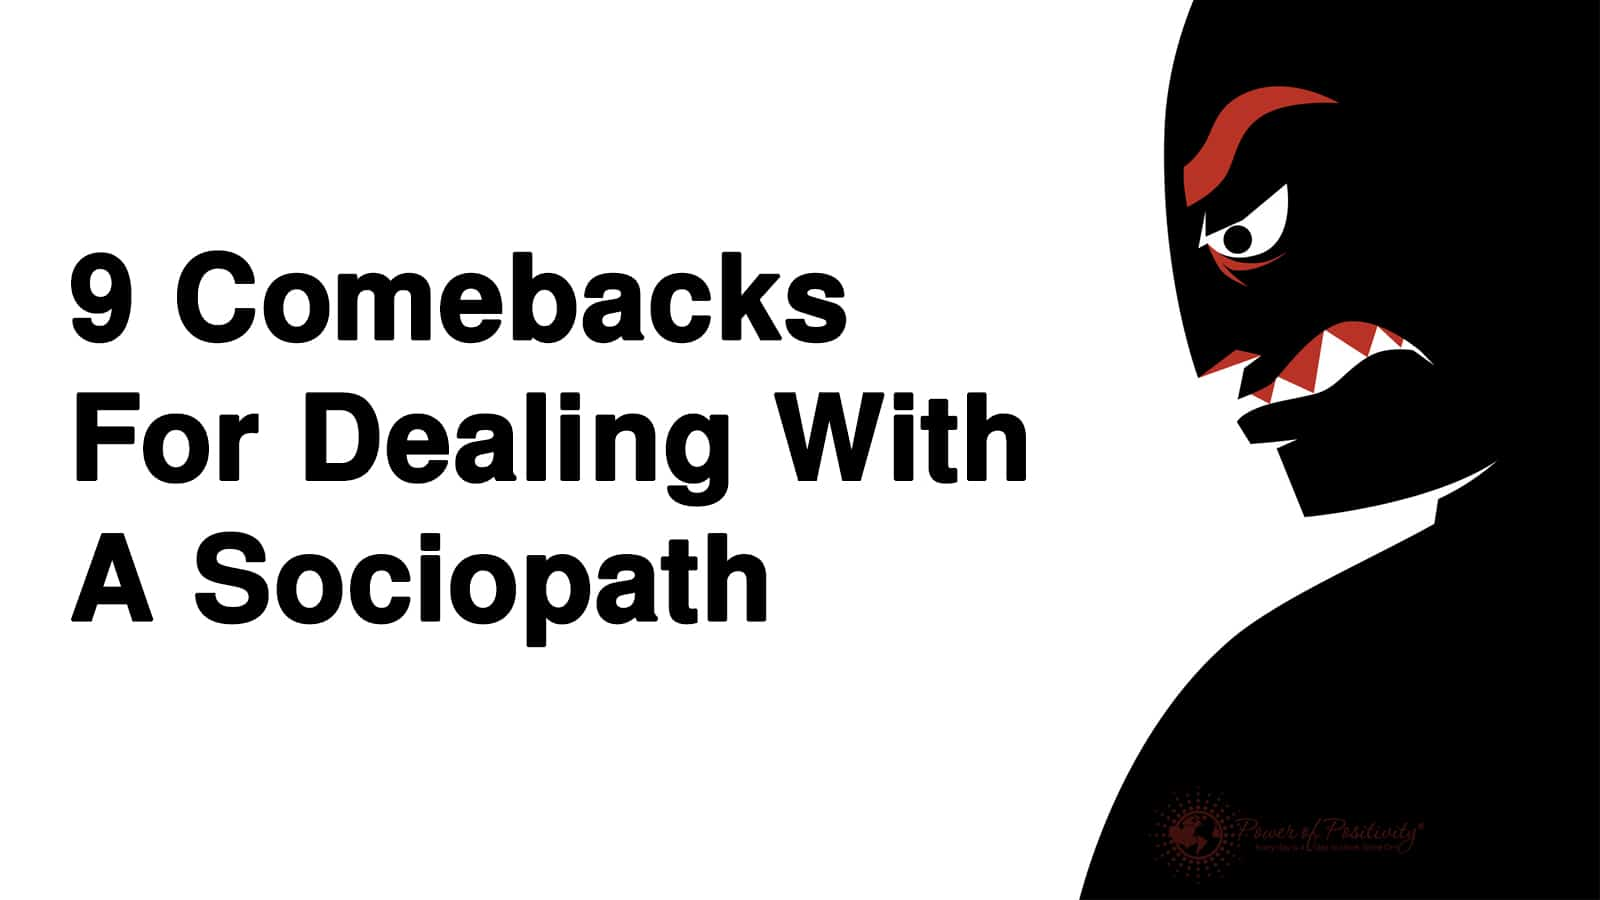 Dealing with sociopaths